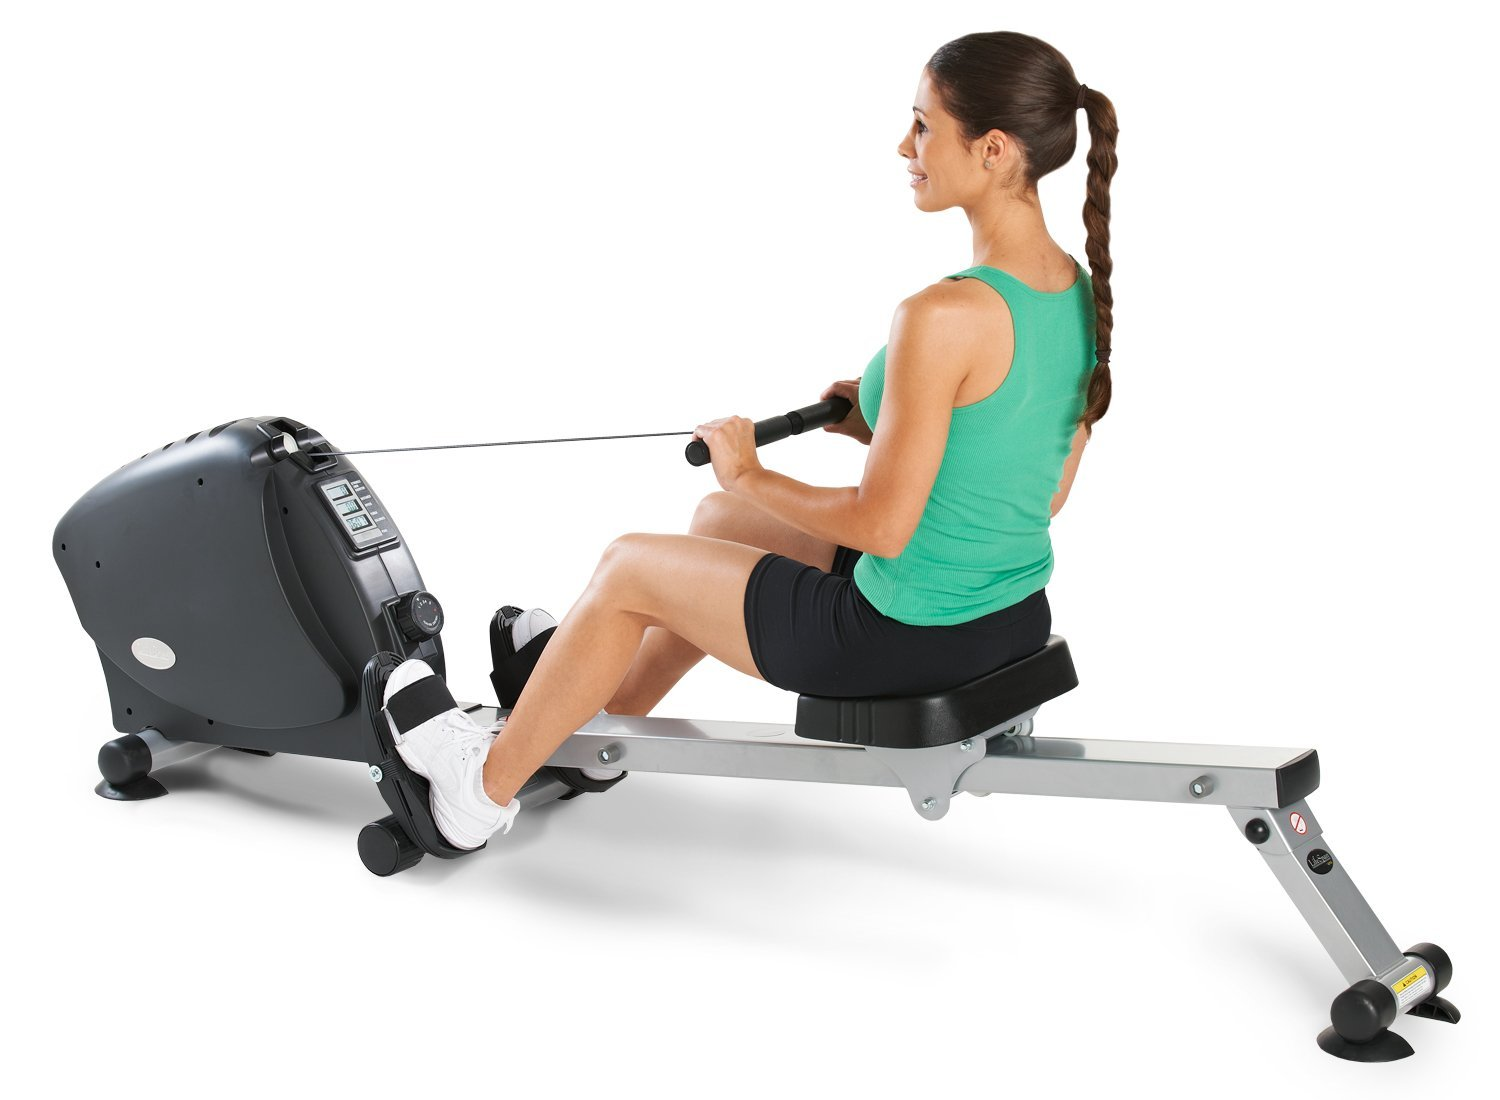 treadmill vs rowing machine